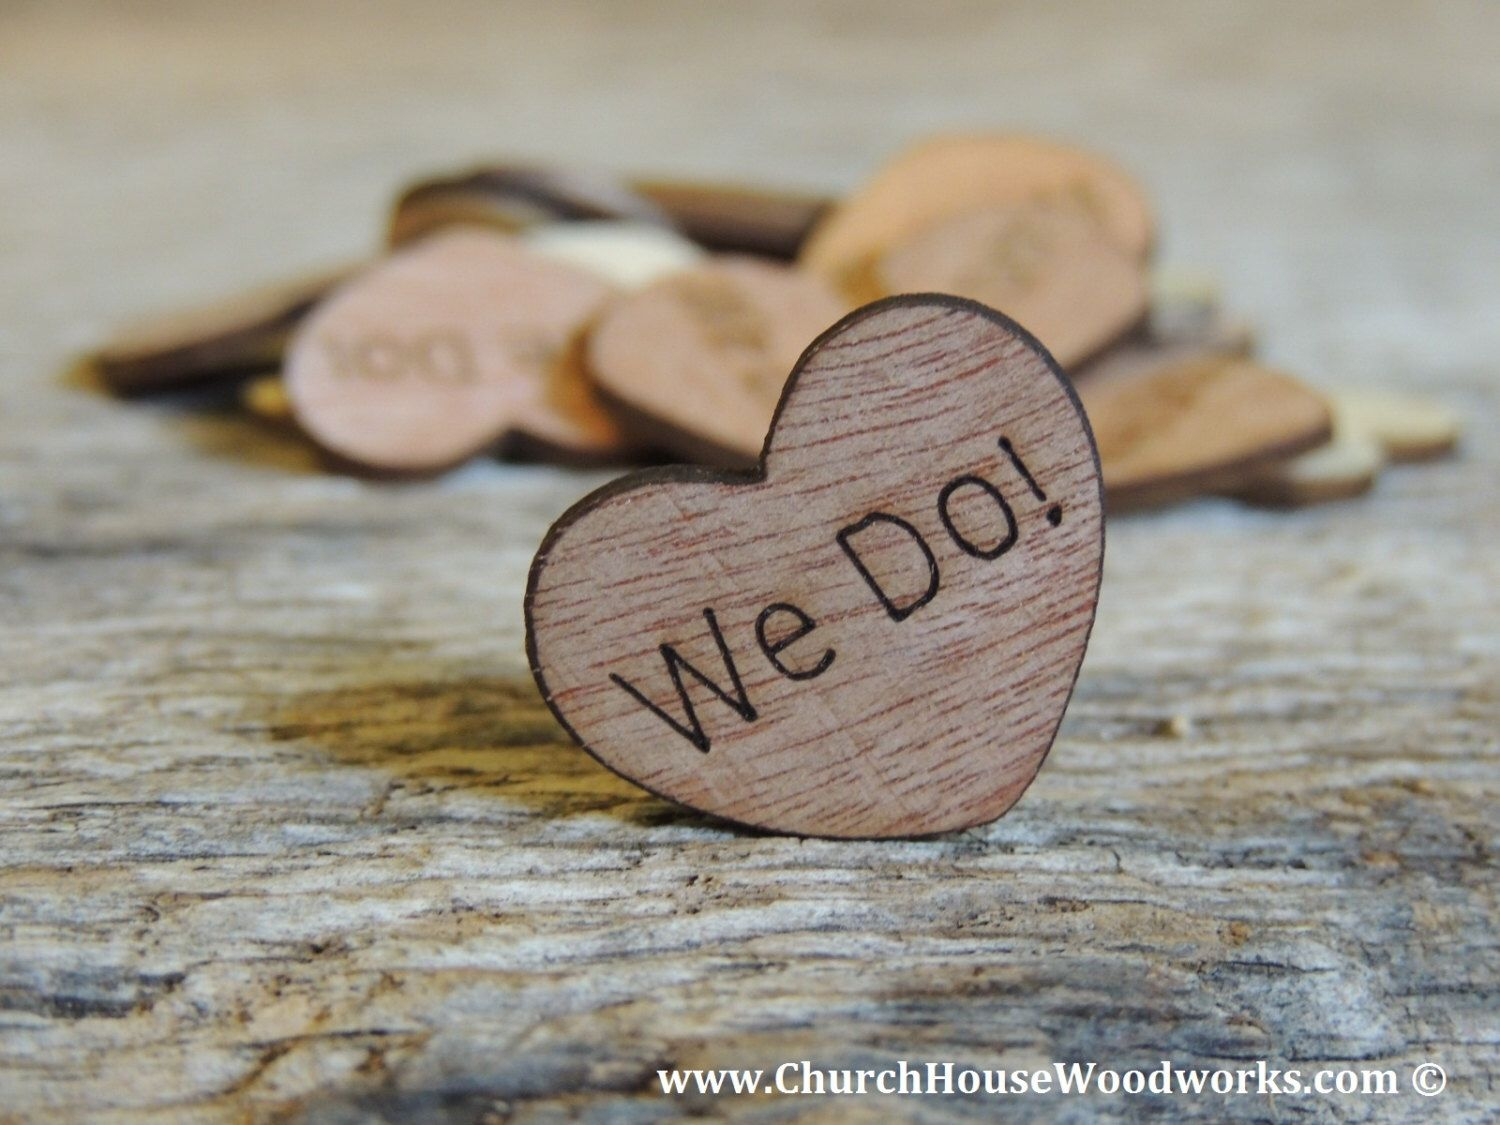 100 We Do 1 Wood Hearts Wood Confetti Engraved Love Hearts Rustic Wedding Decor Table Decoration Rustic Wedding Centerpieces Wooden Hearts